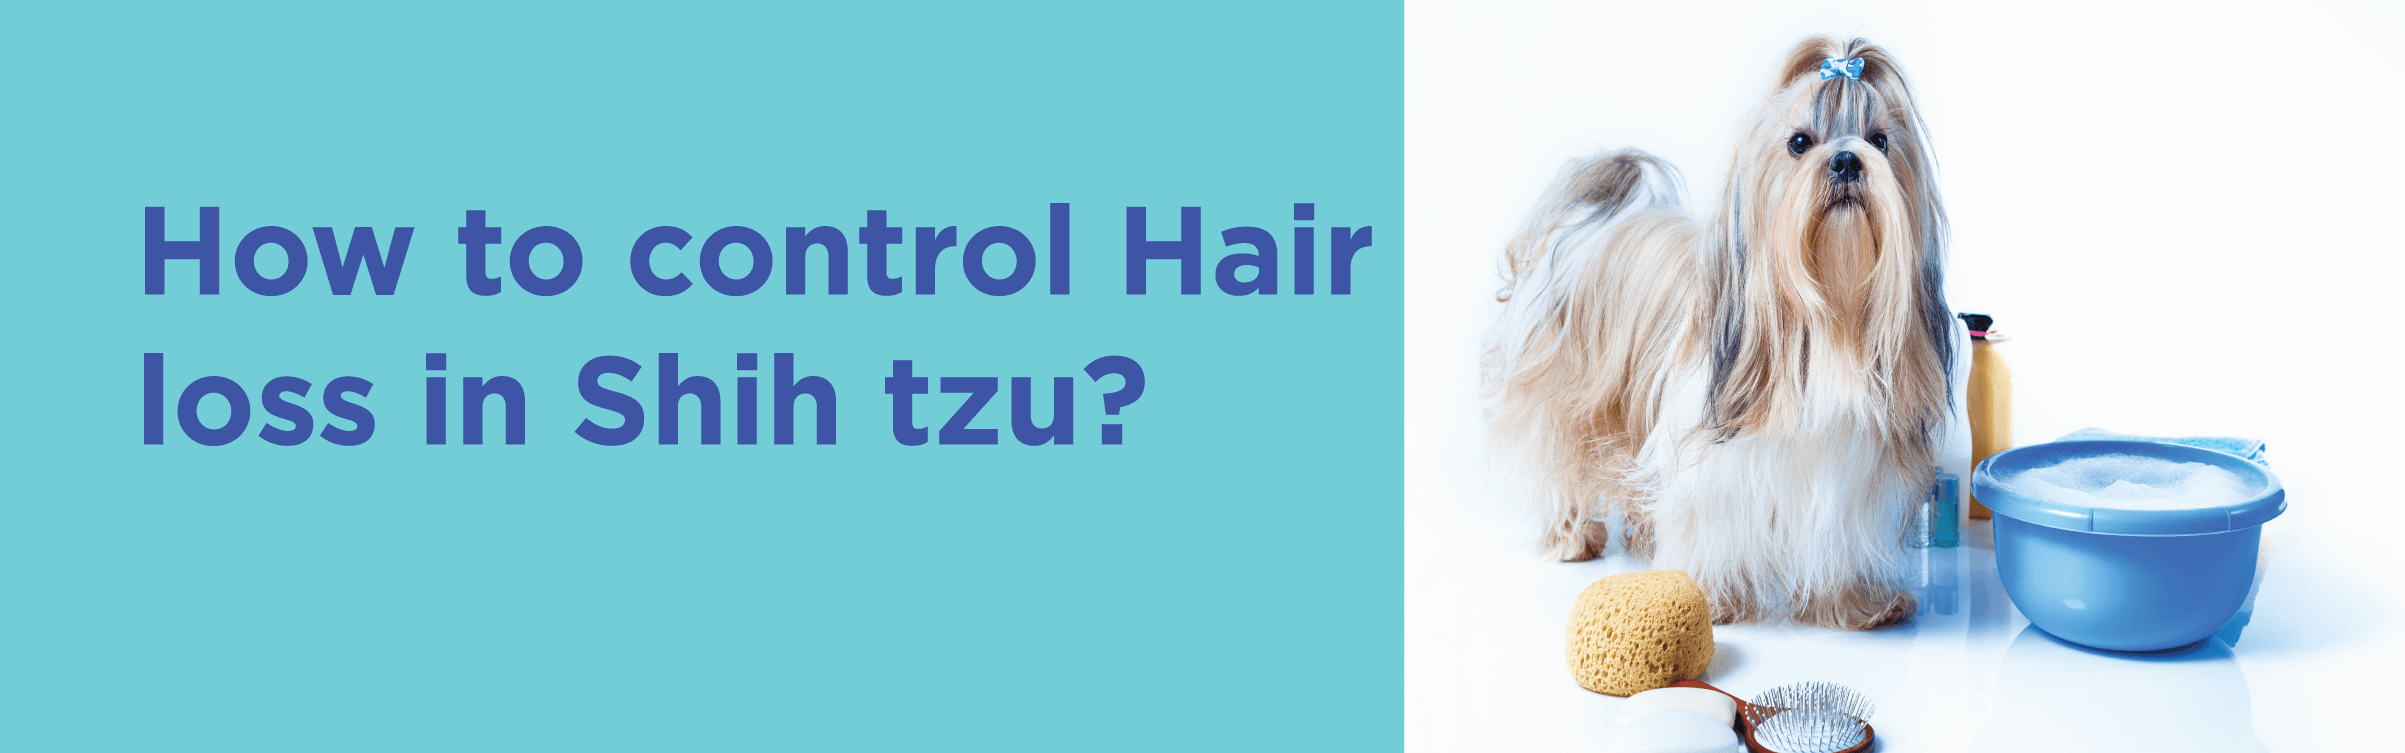 How to control Hair loss in shih tzu